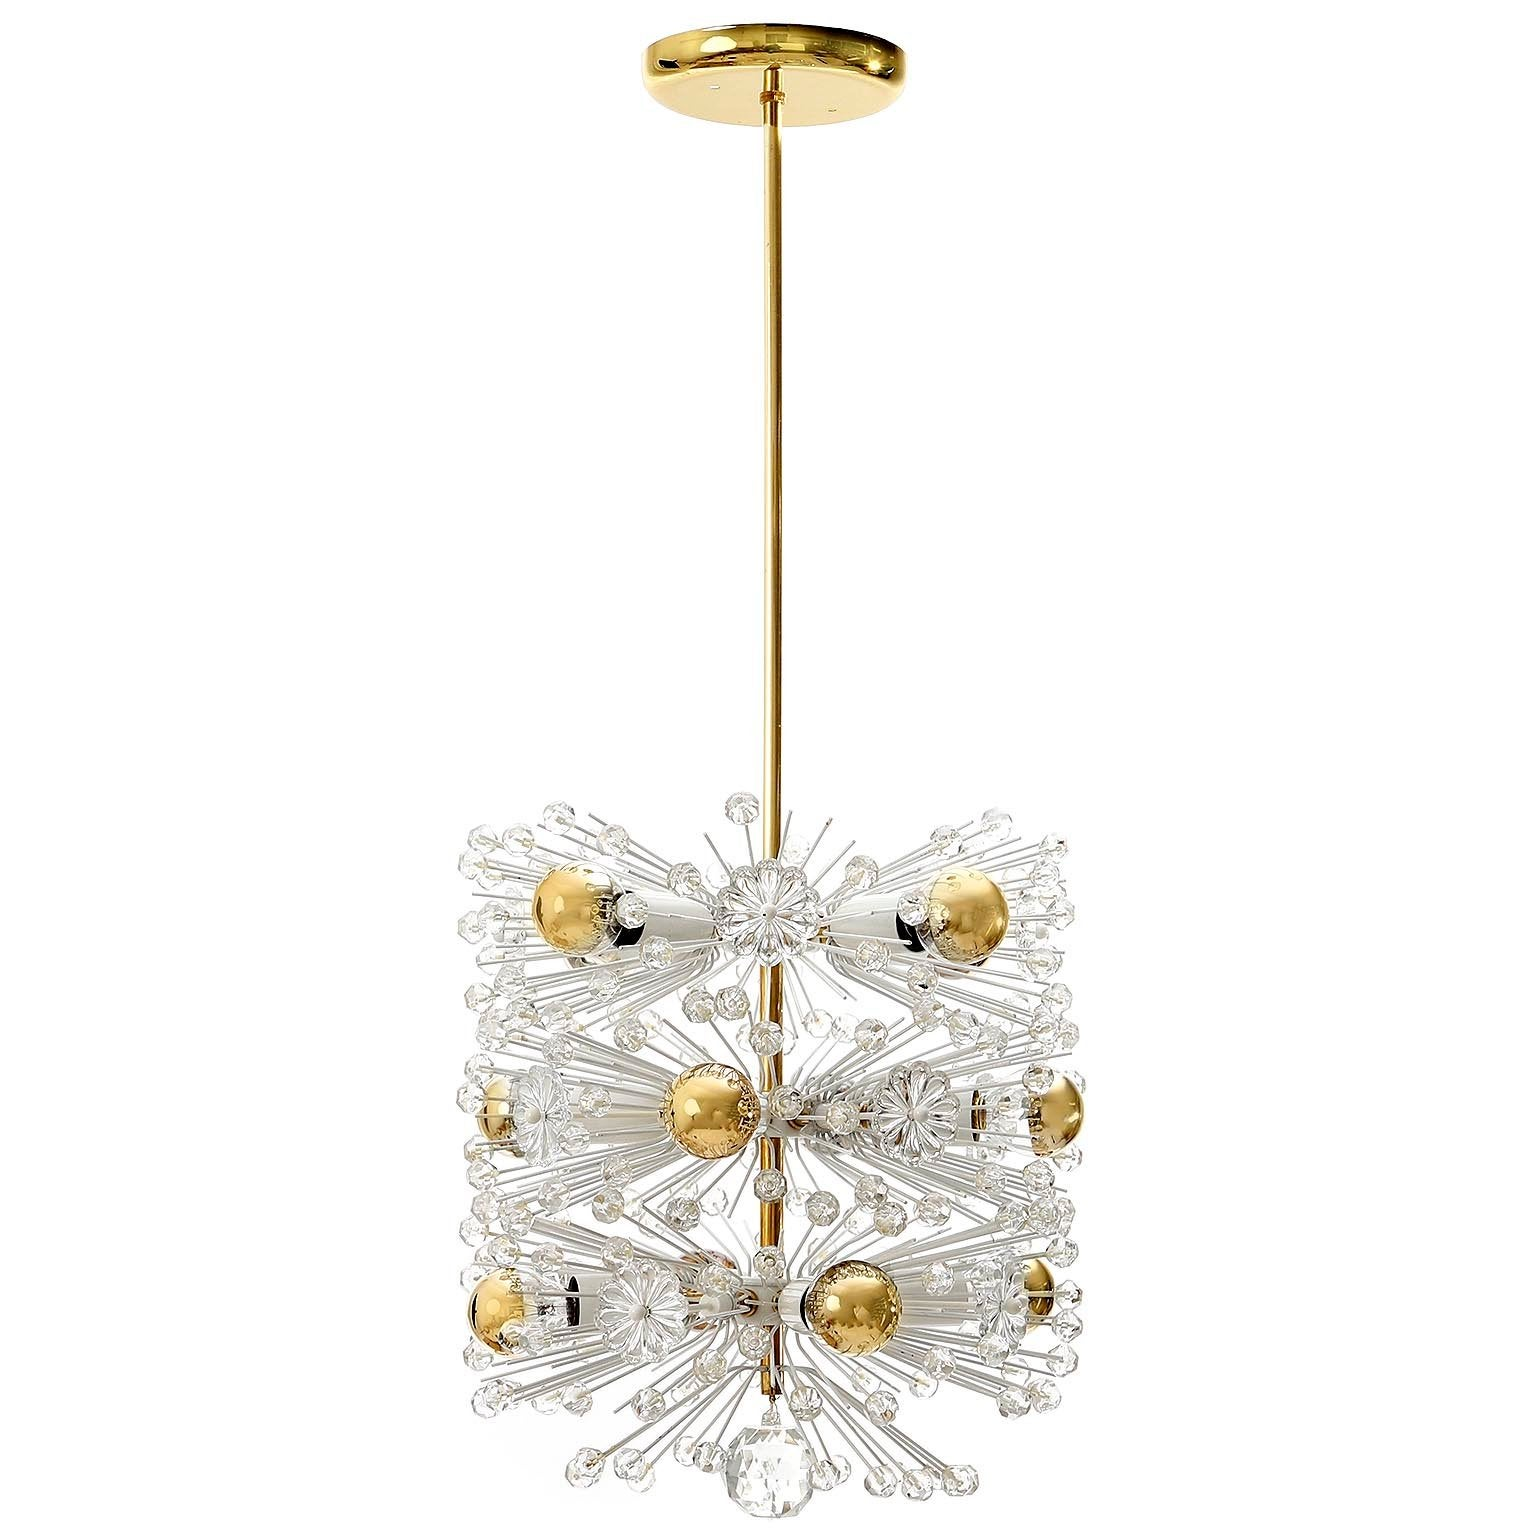 Emil Stejnar Pendant Light Chandeliers Brass Cut Glass, Austria, 1950s, 1 of 3